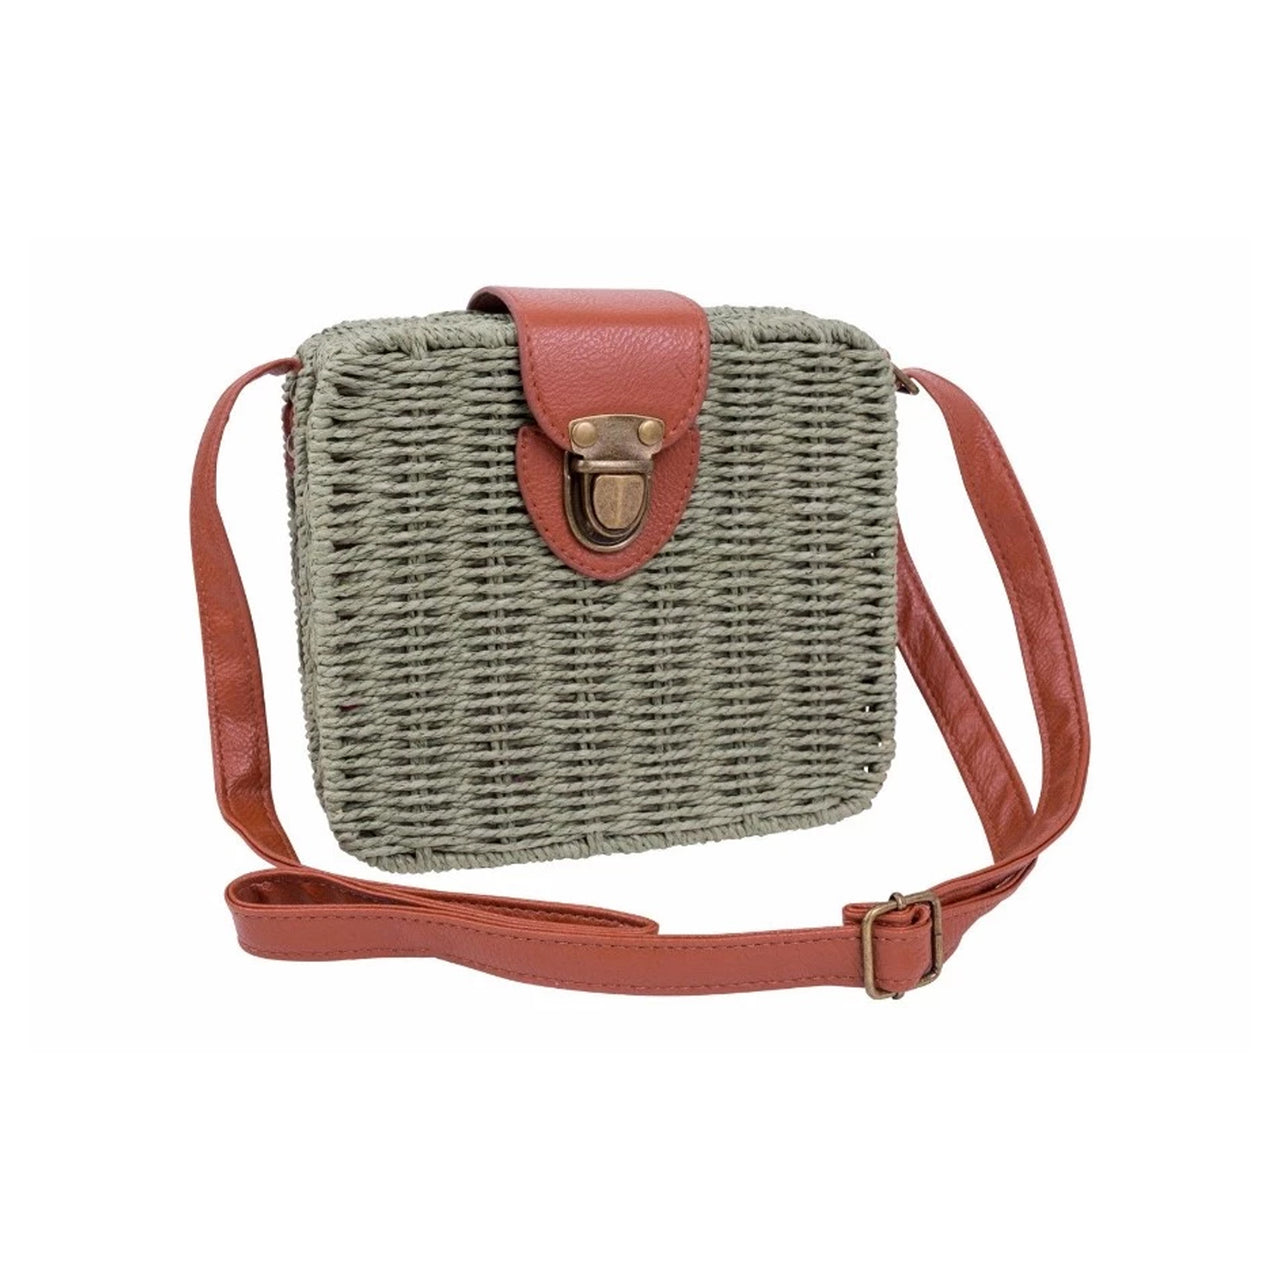 Square Wicker Sling Bag - Olive Green